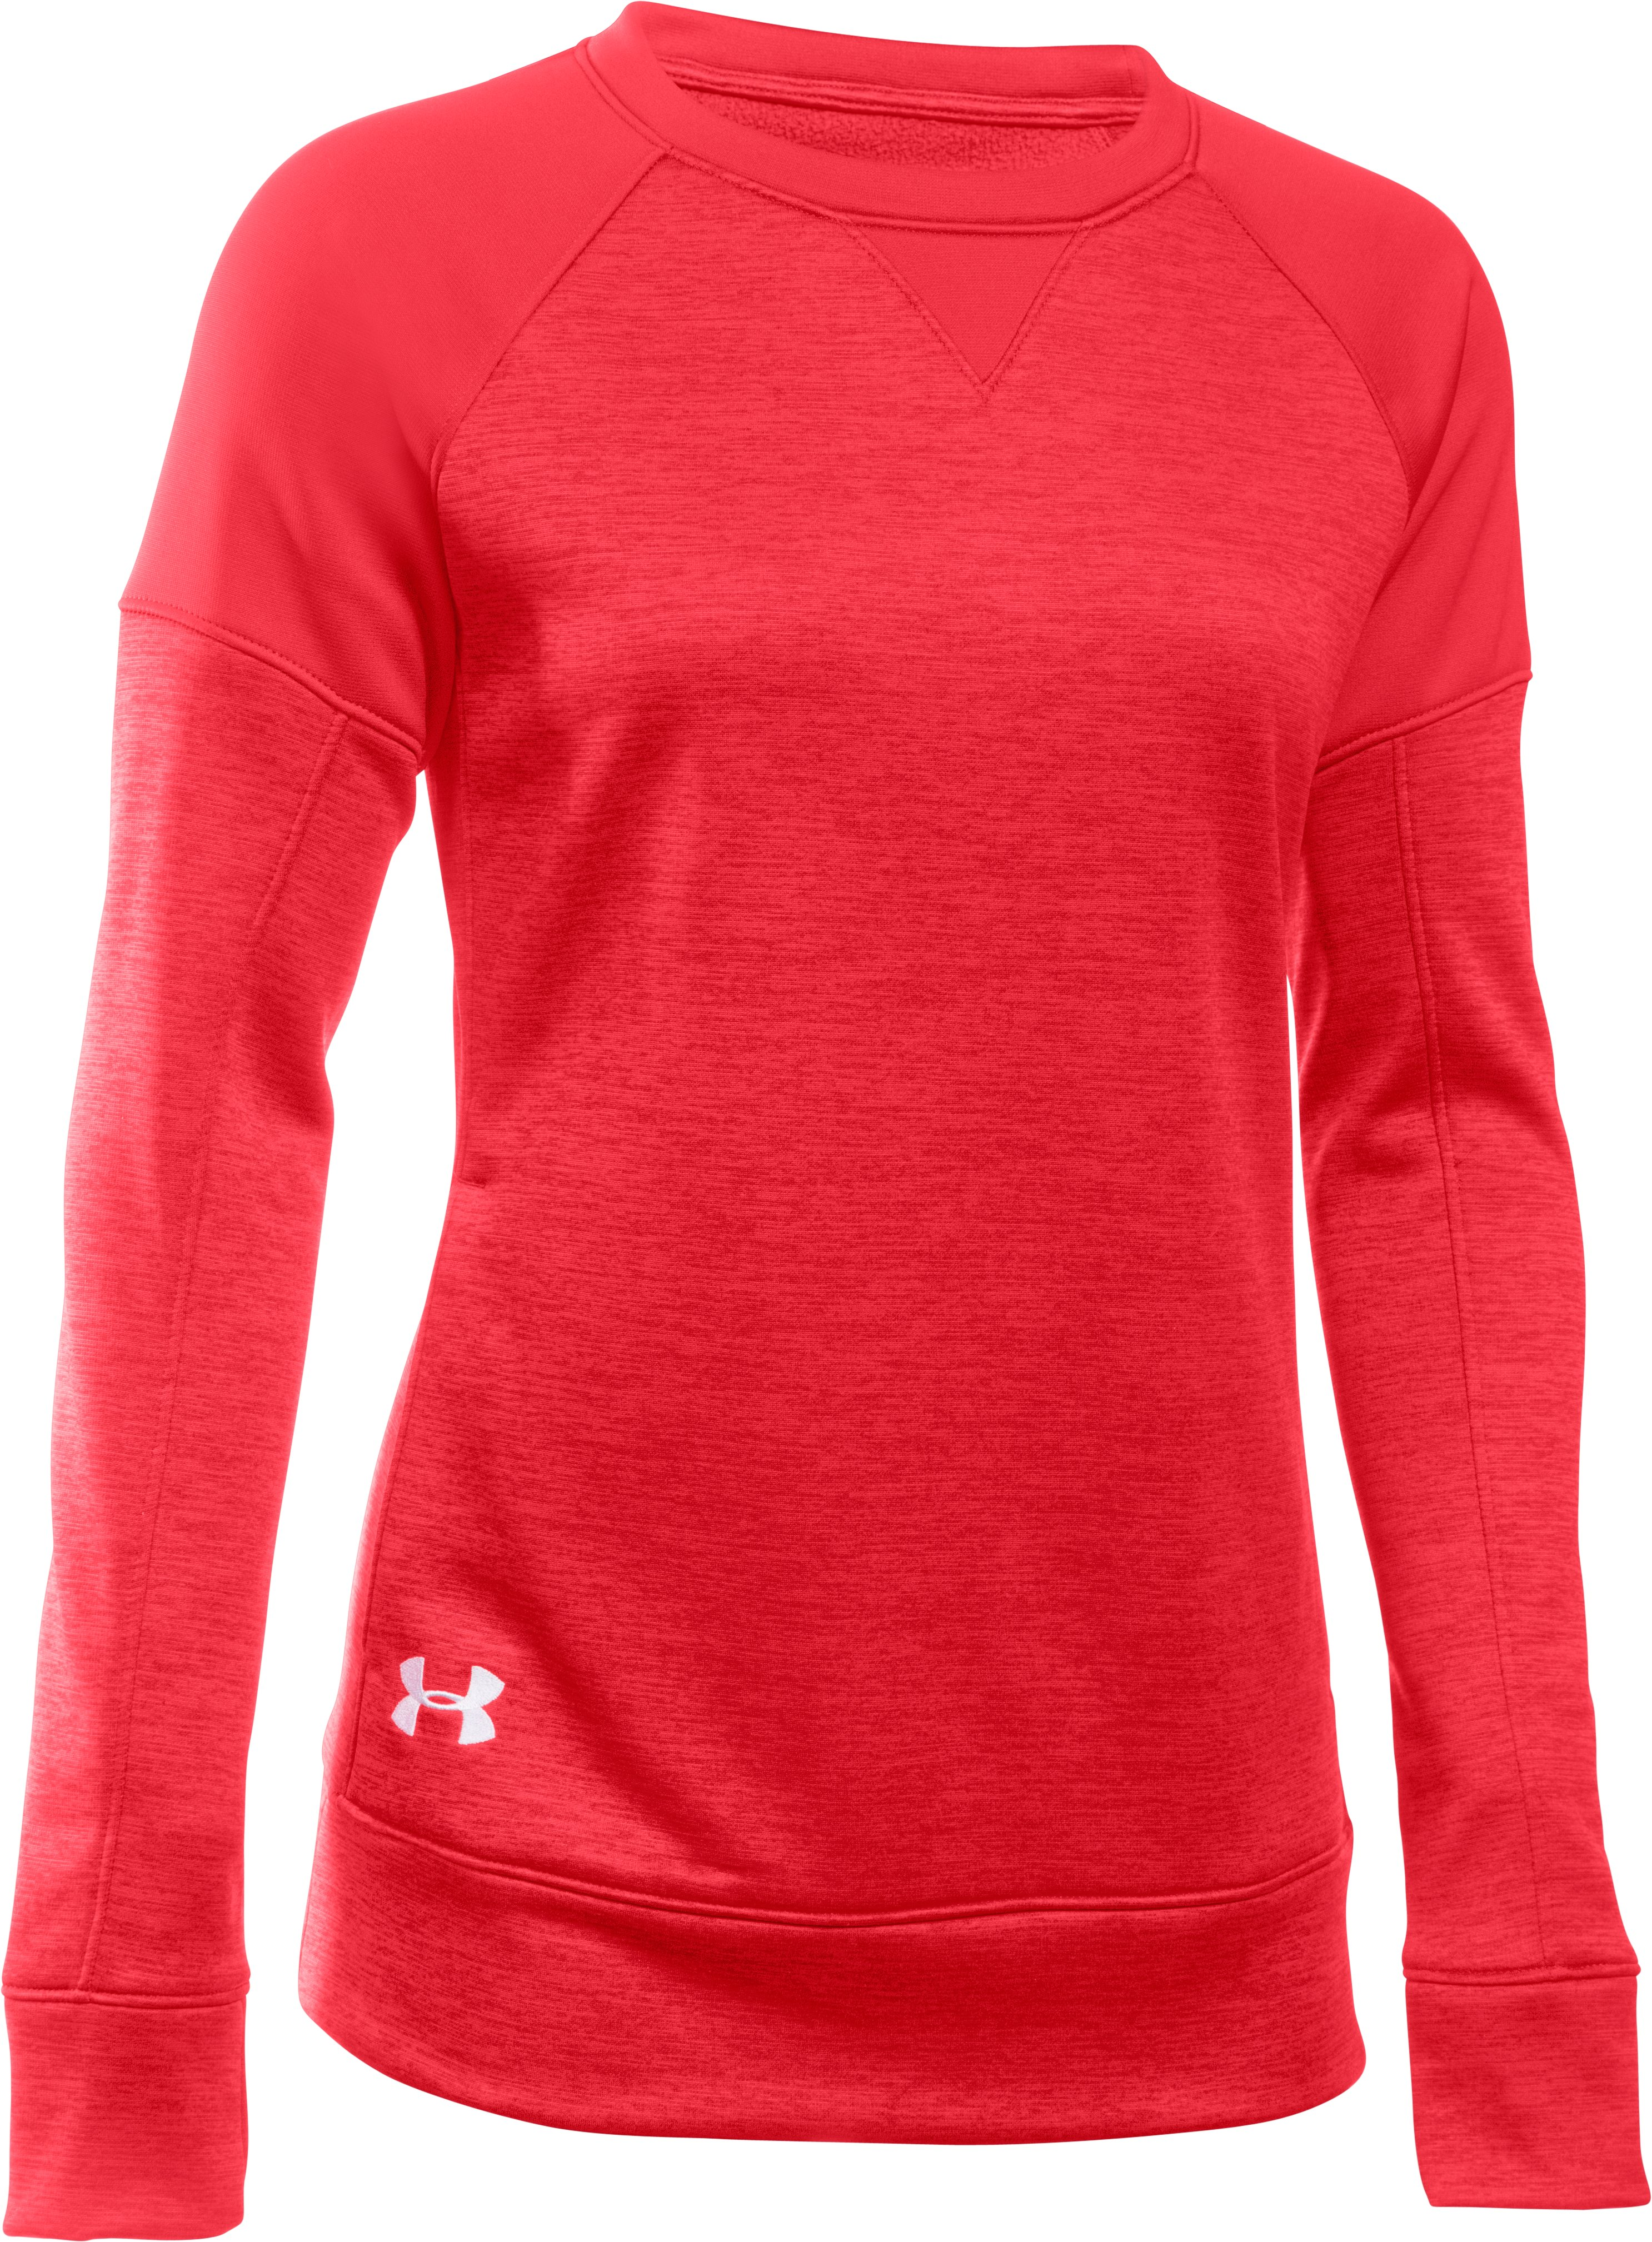 Women's  Armour Fleece® Textured Long Sleeve Crew, Red, undefined